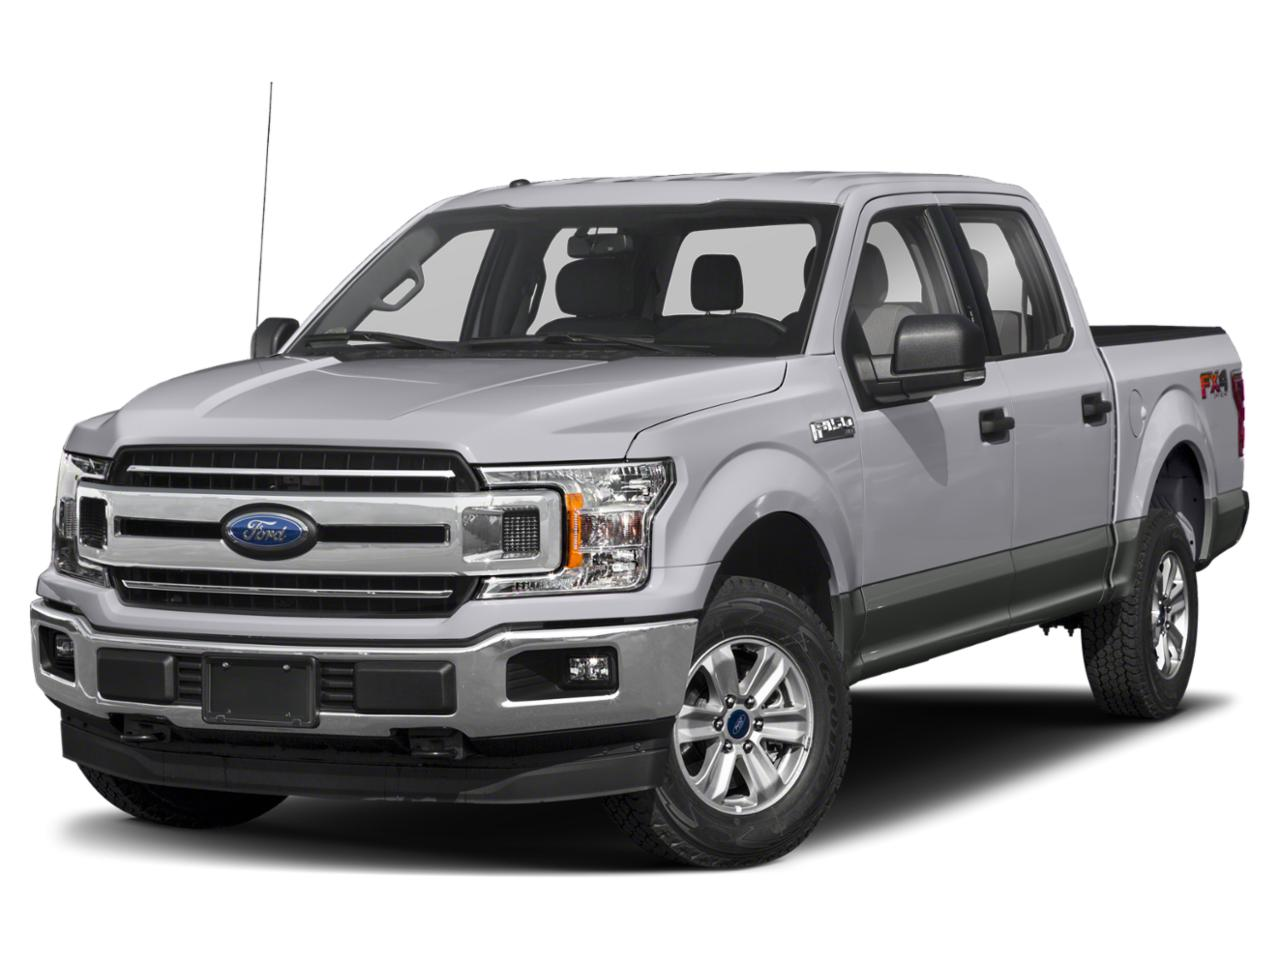 2020 Ford F-150 Vehicle Photo in Hartford, KY 42347-1845